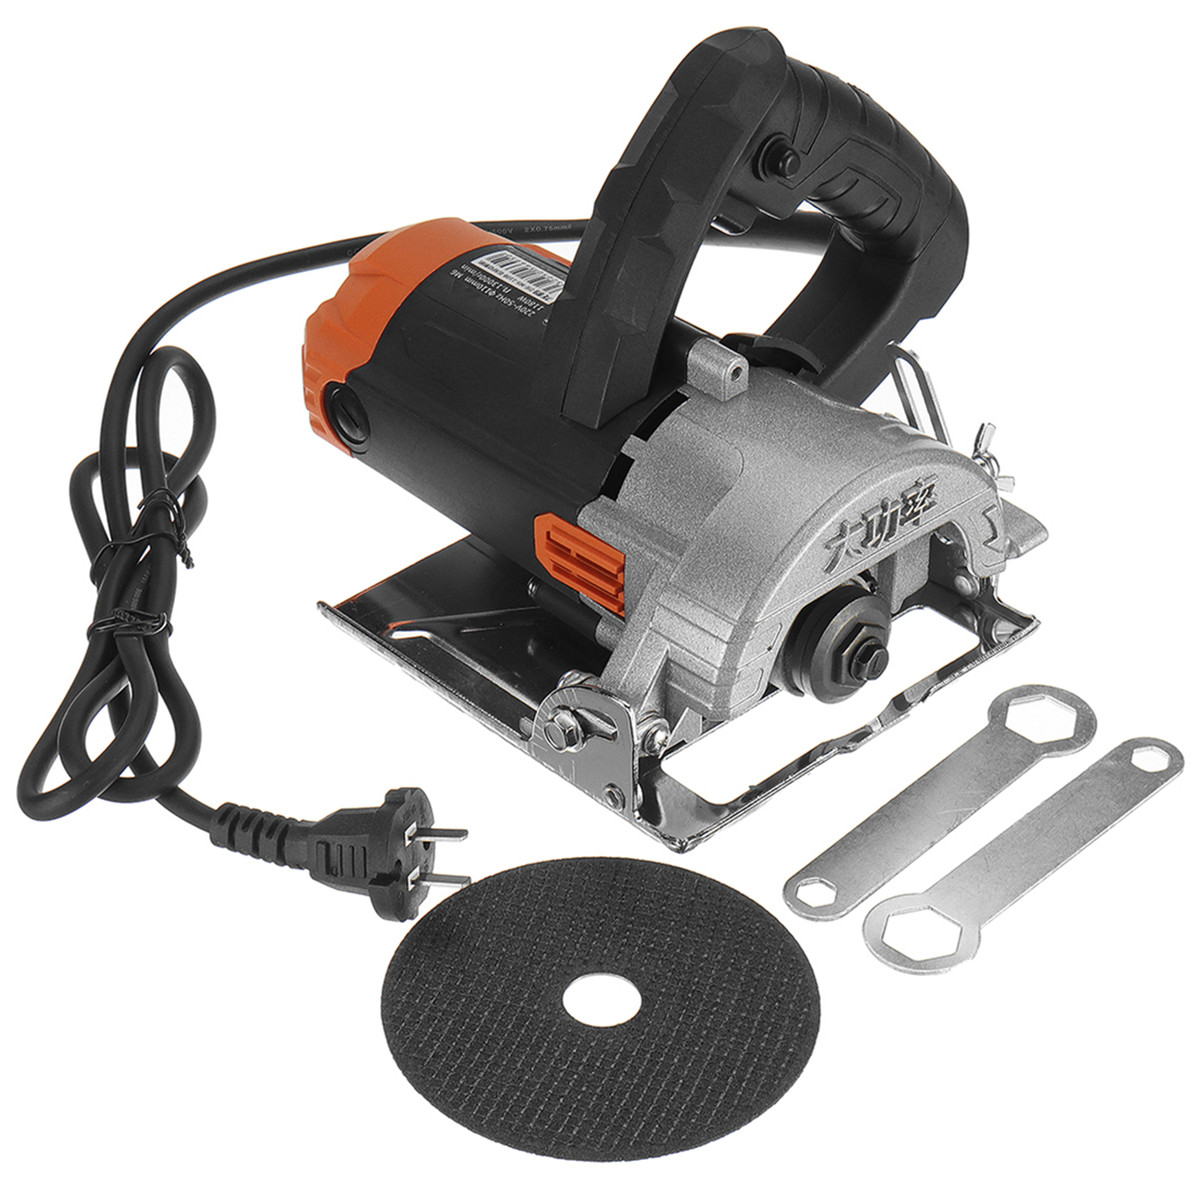 13000RPM High Speed 1180W Electric Saw Motors 110mm Blade Wood Metal portable Cutting Machine Wire Saw Ceramic Marble tile Tool